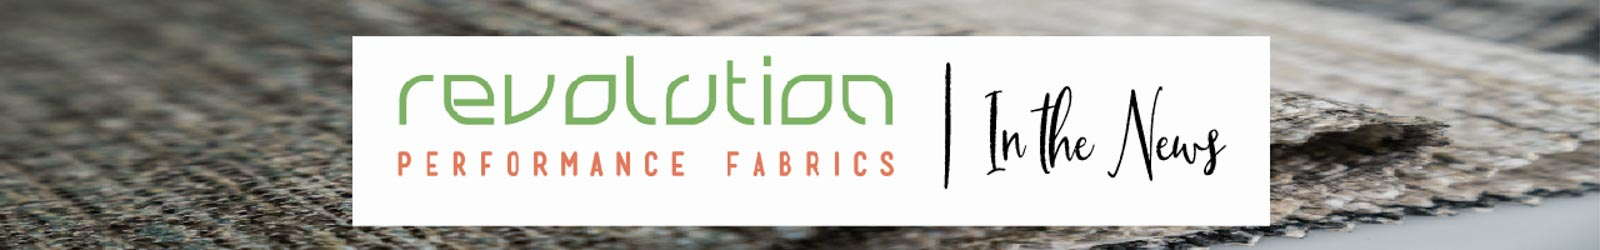 Revolution fabrics in the news banner